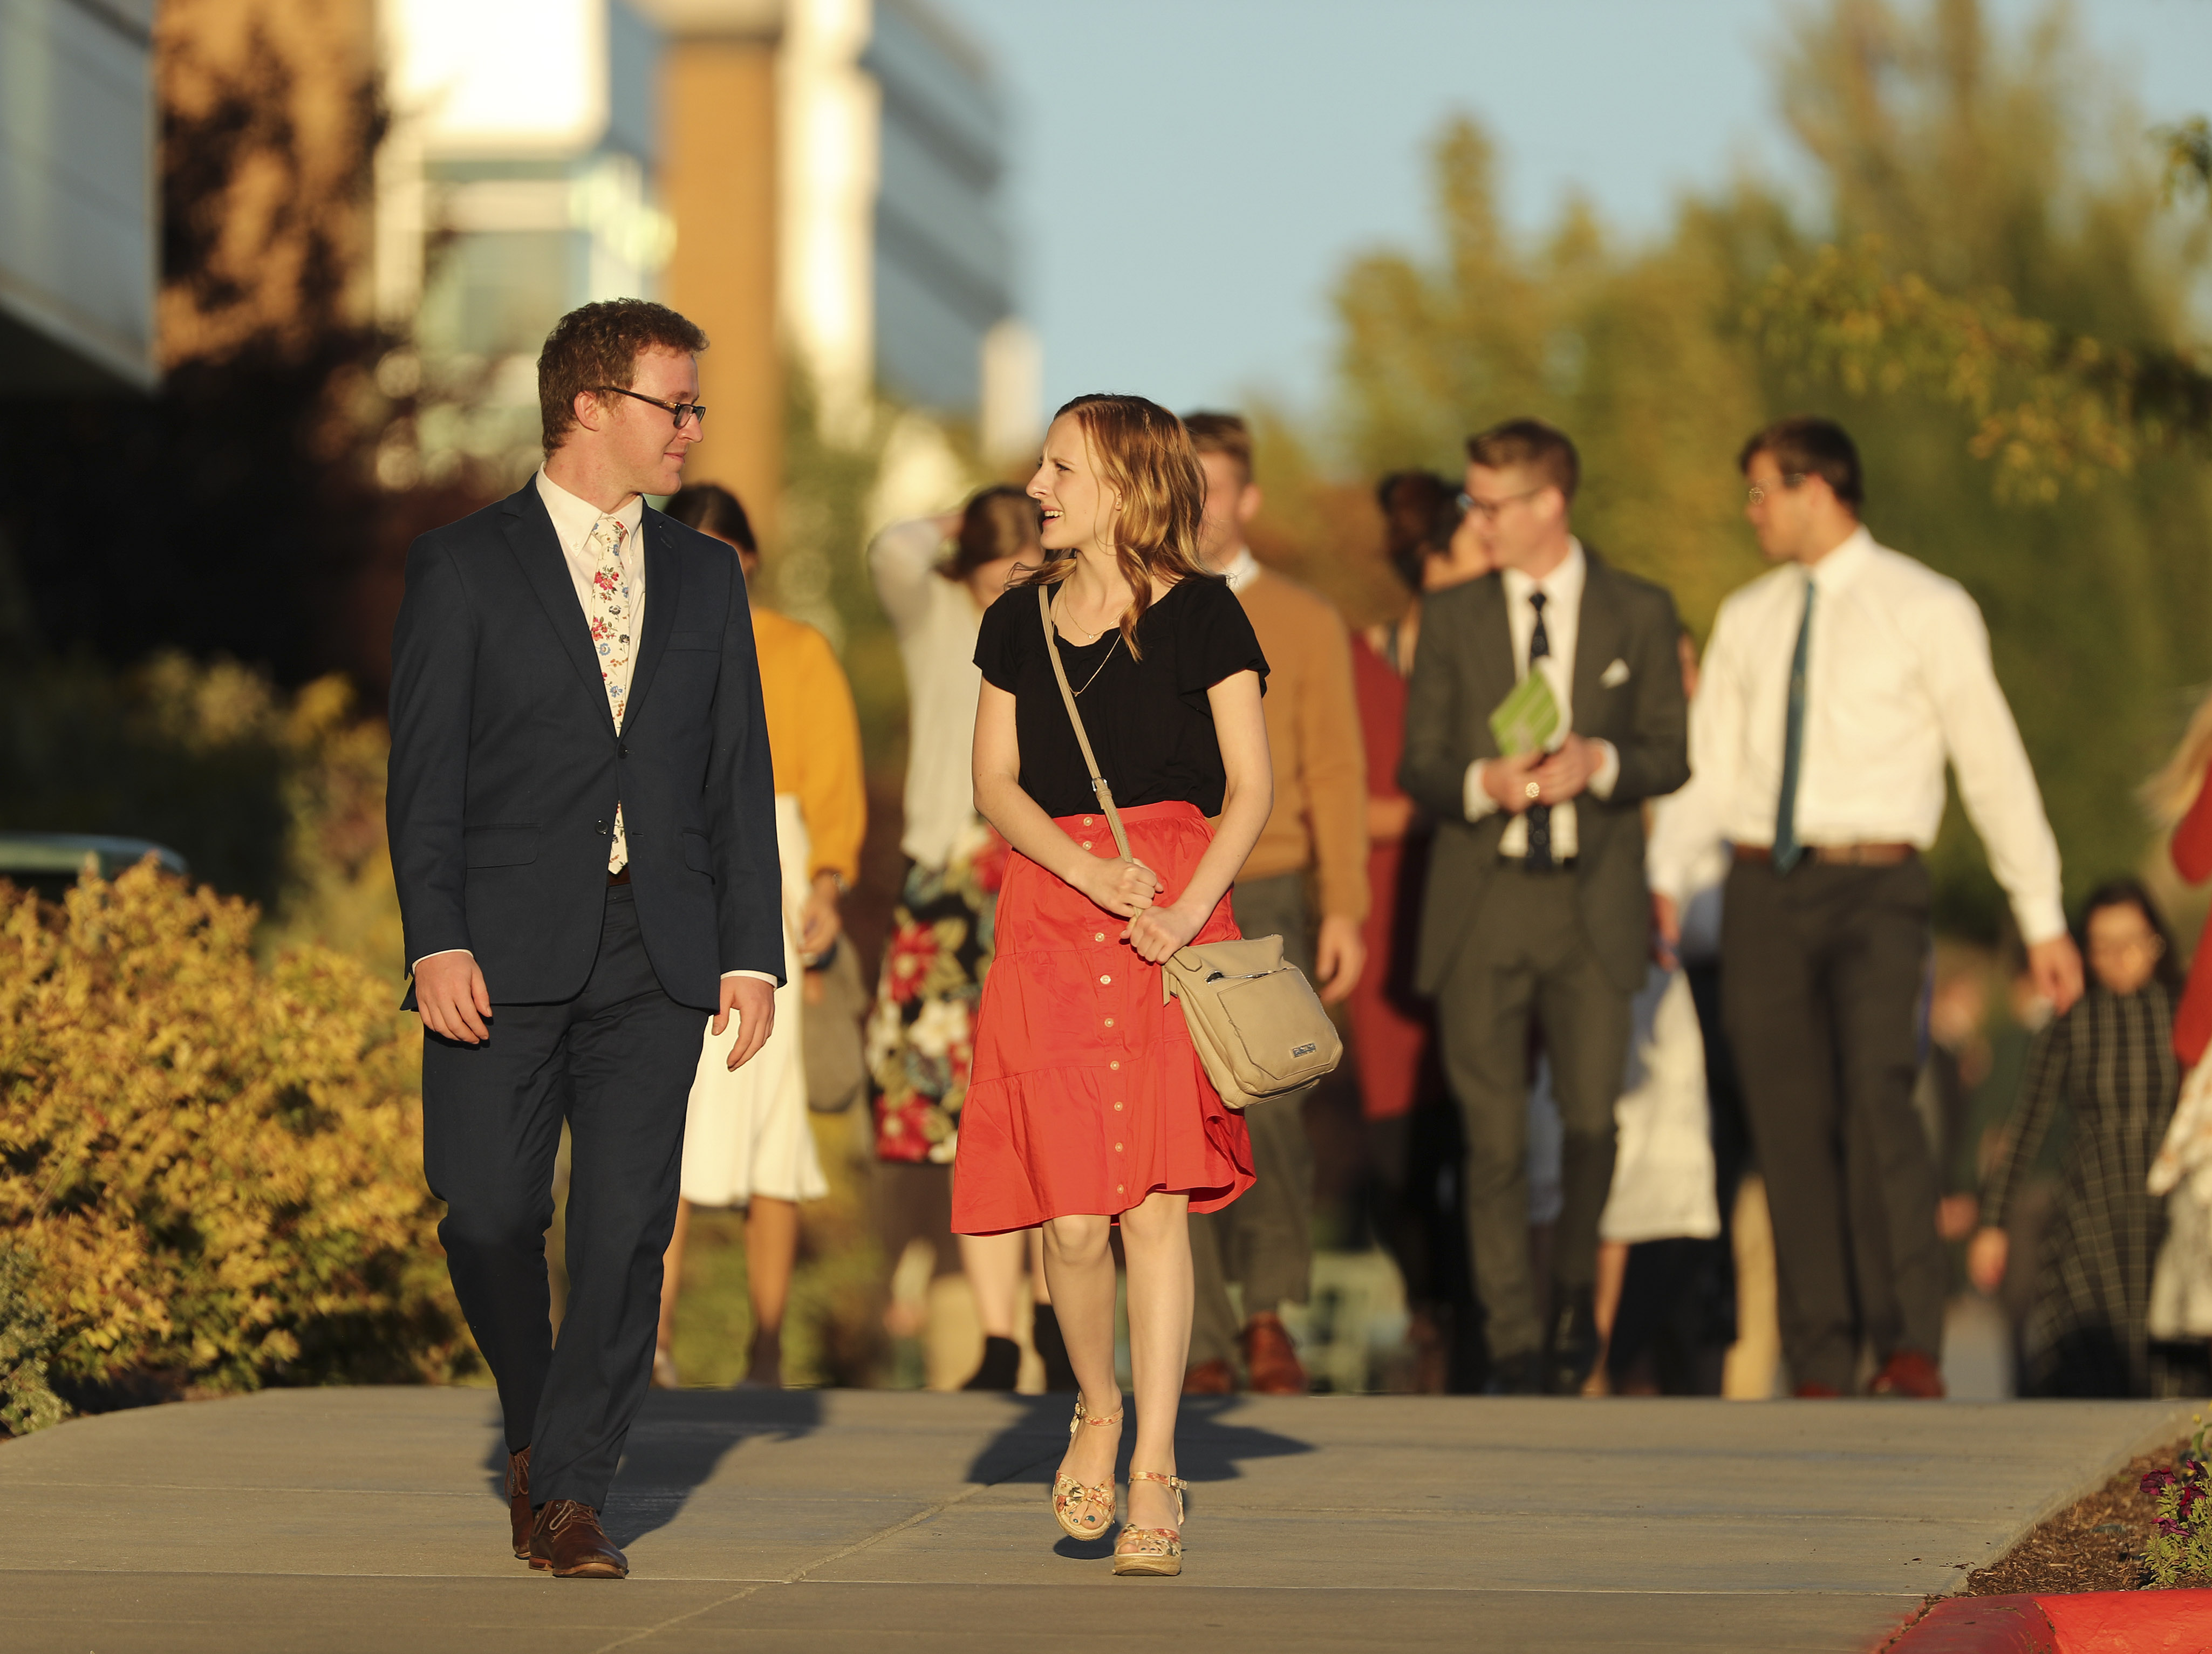 Students leave the BYU-Idaho Center after listening to Elder David A. Bednar, of the Quorum of the Twelve Apostles of The Church of Jesus Christ of Latter-day Saints, during a fireside at BYU Idaho in Rexburg on Sunday, Sept. 22, 2019.